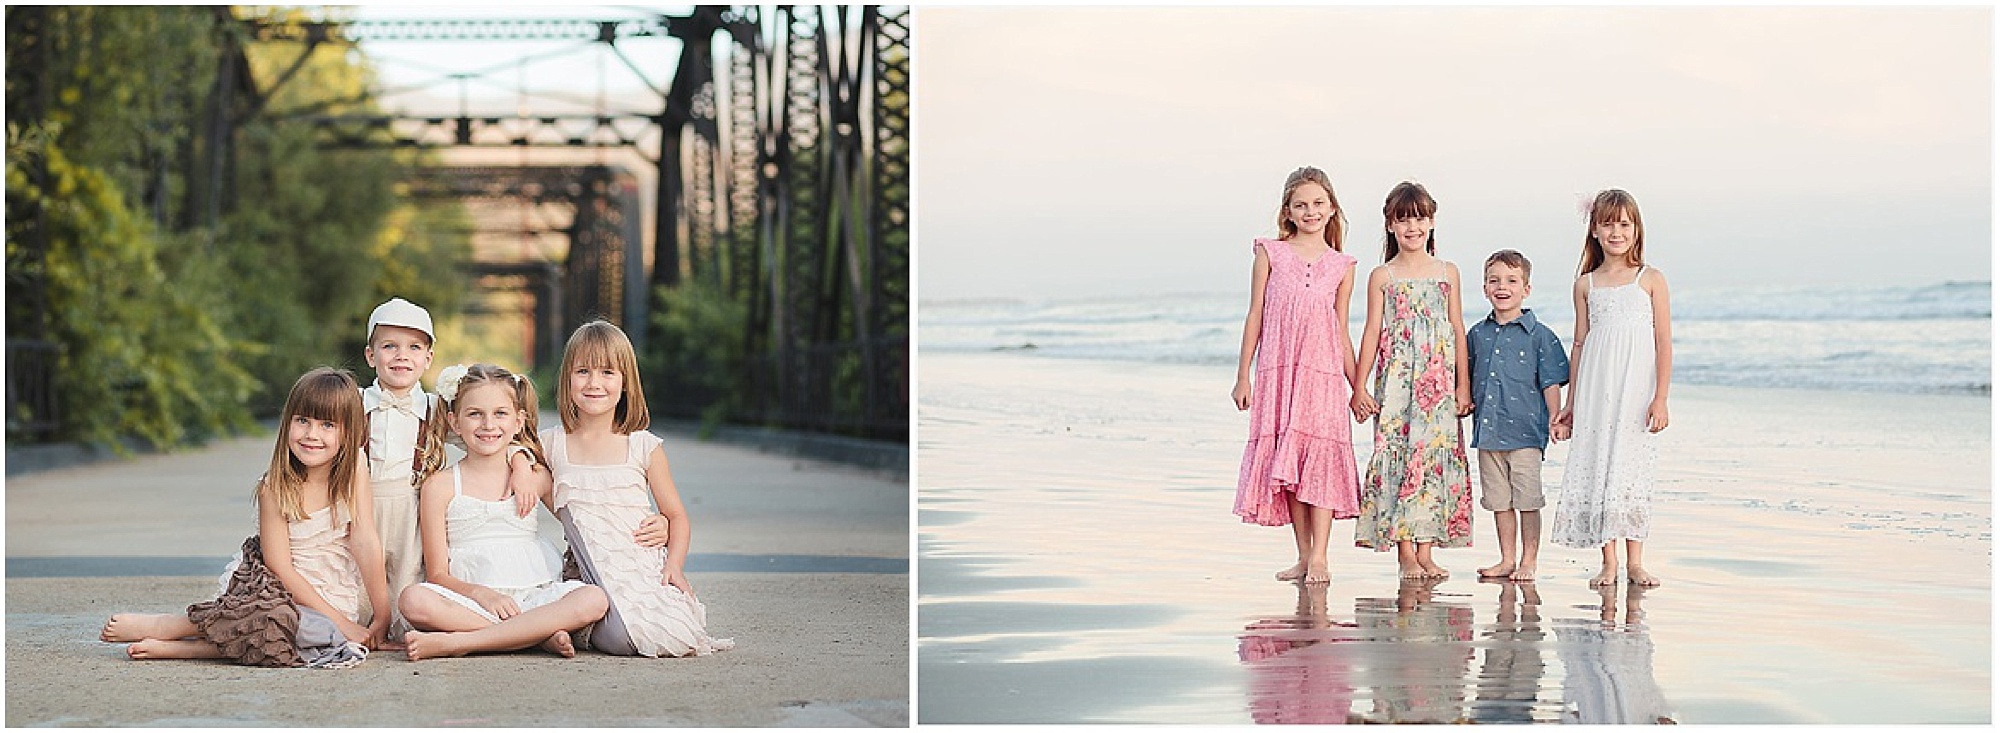 San Diego Photographer | San Diego Child Photos